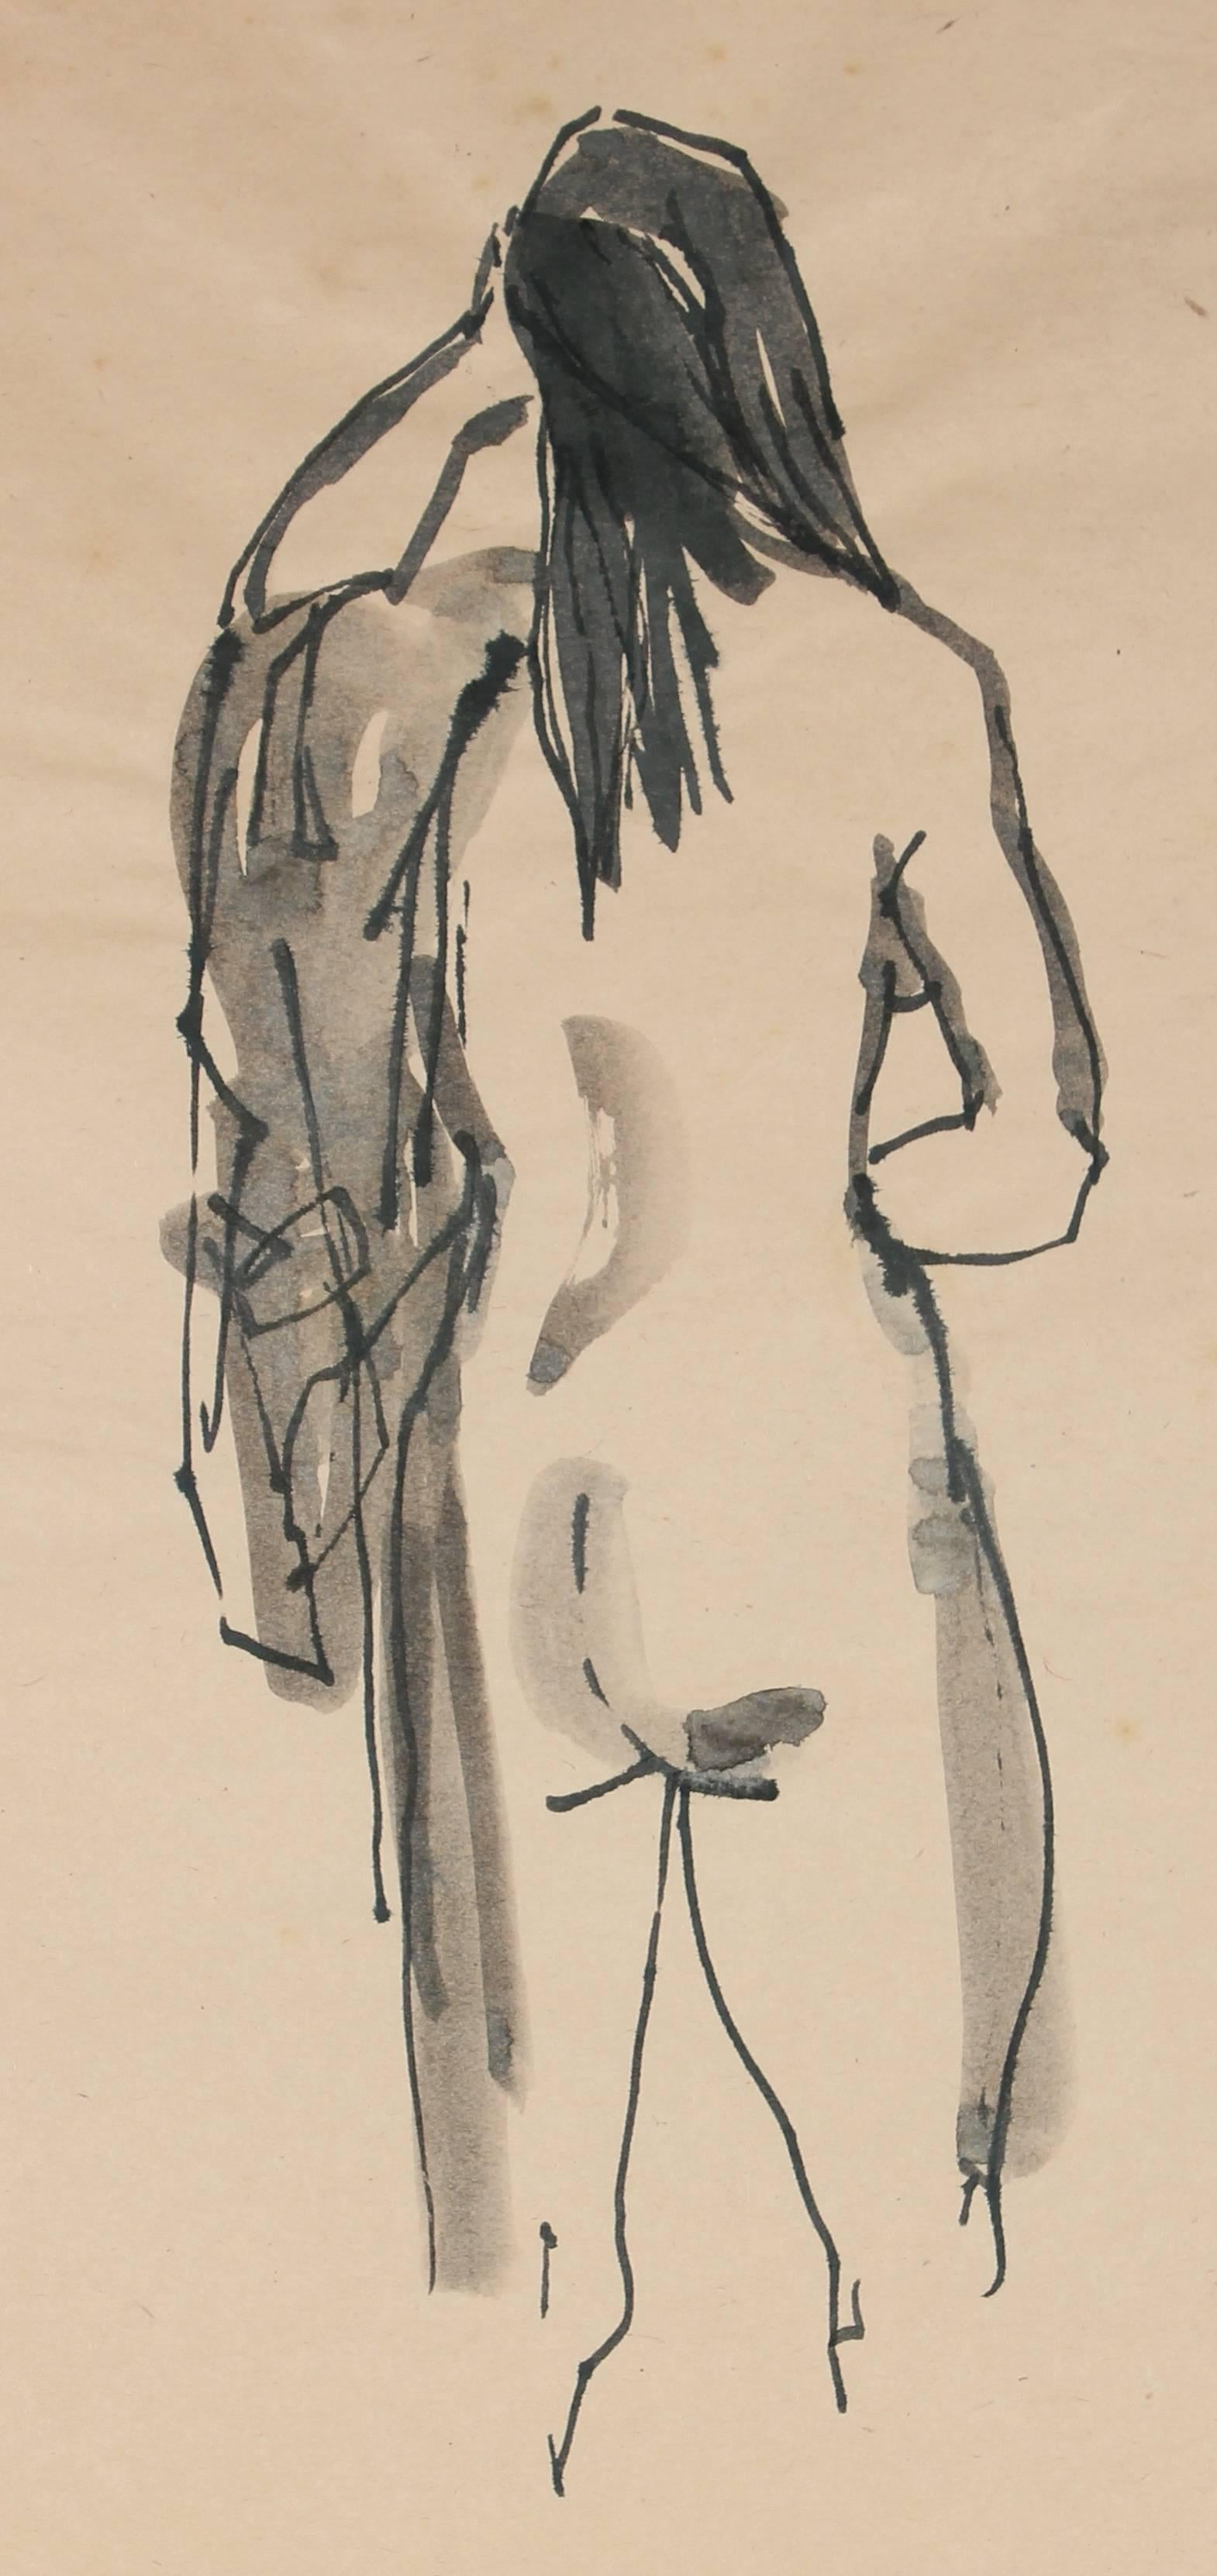 Standing Nude with Coat, Ink Drawing, 20th Century